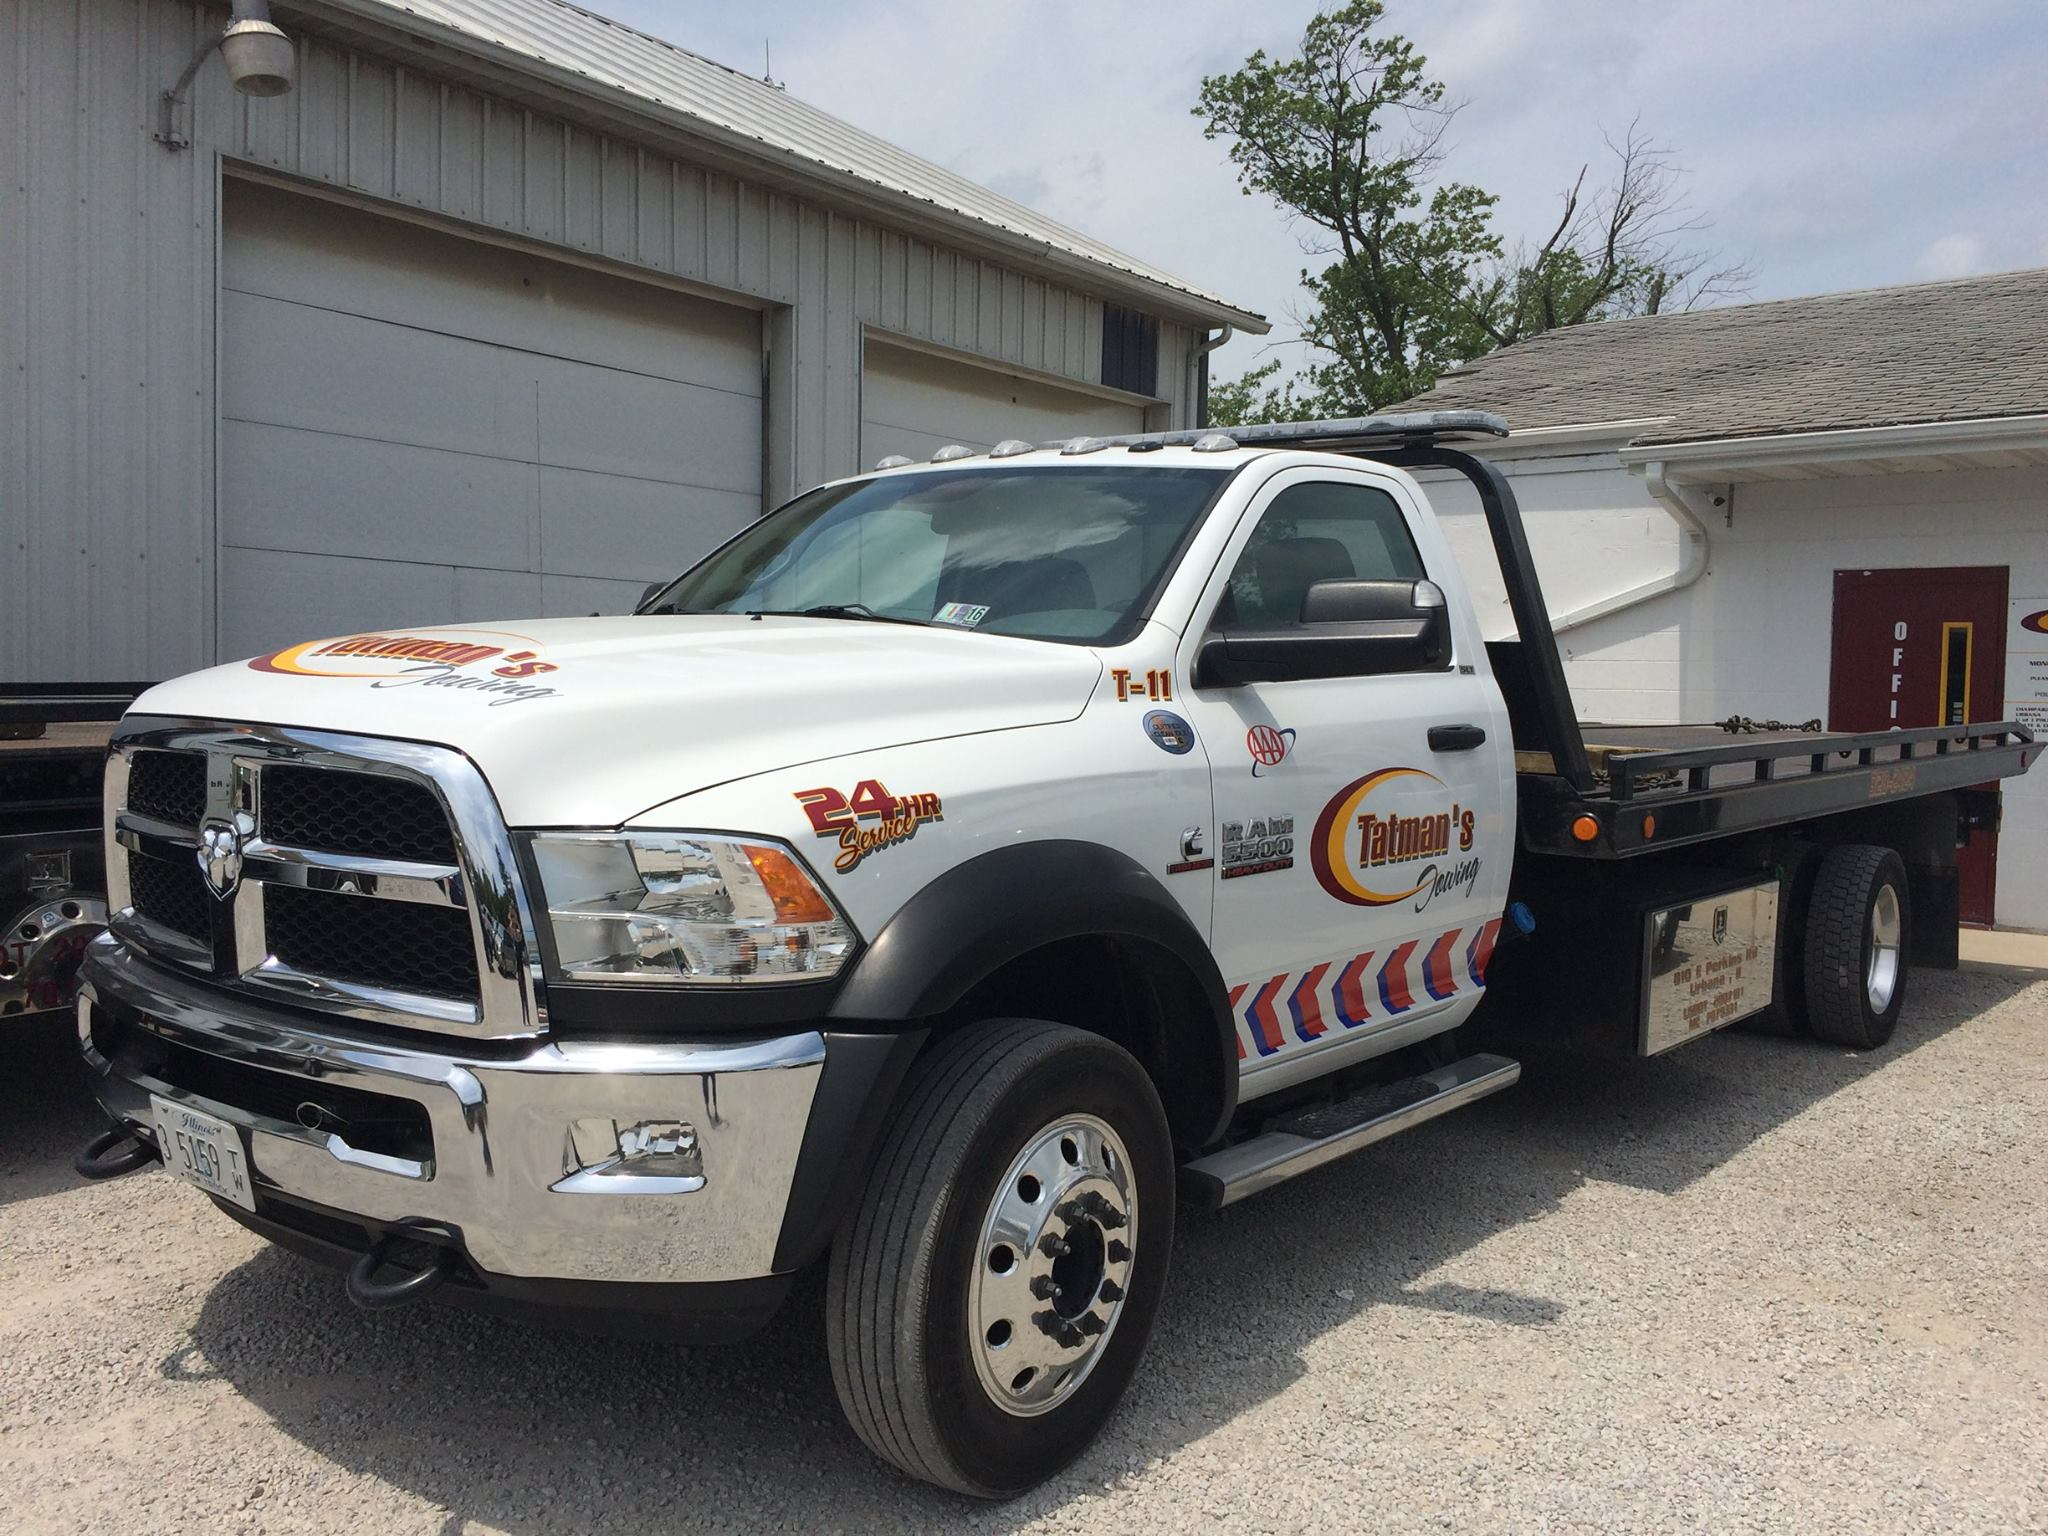 tatmans-towing-about-flatbed